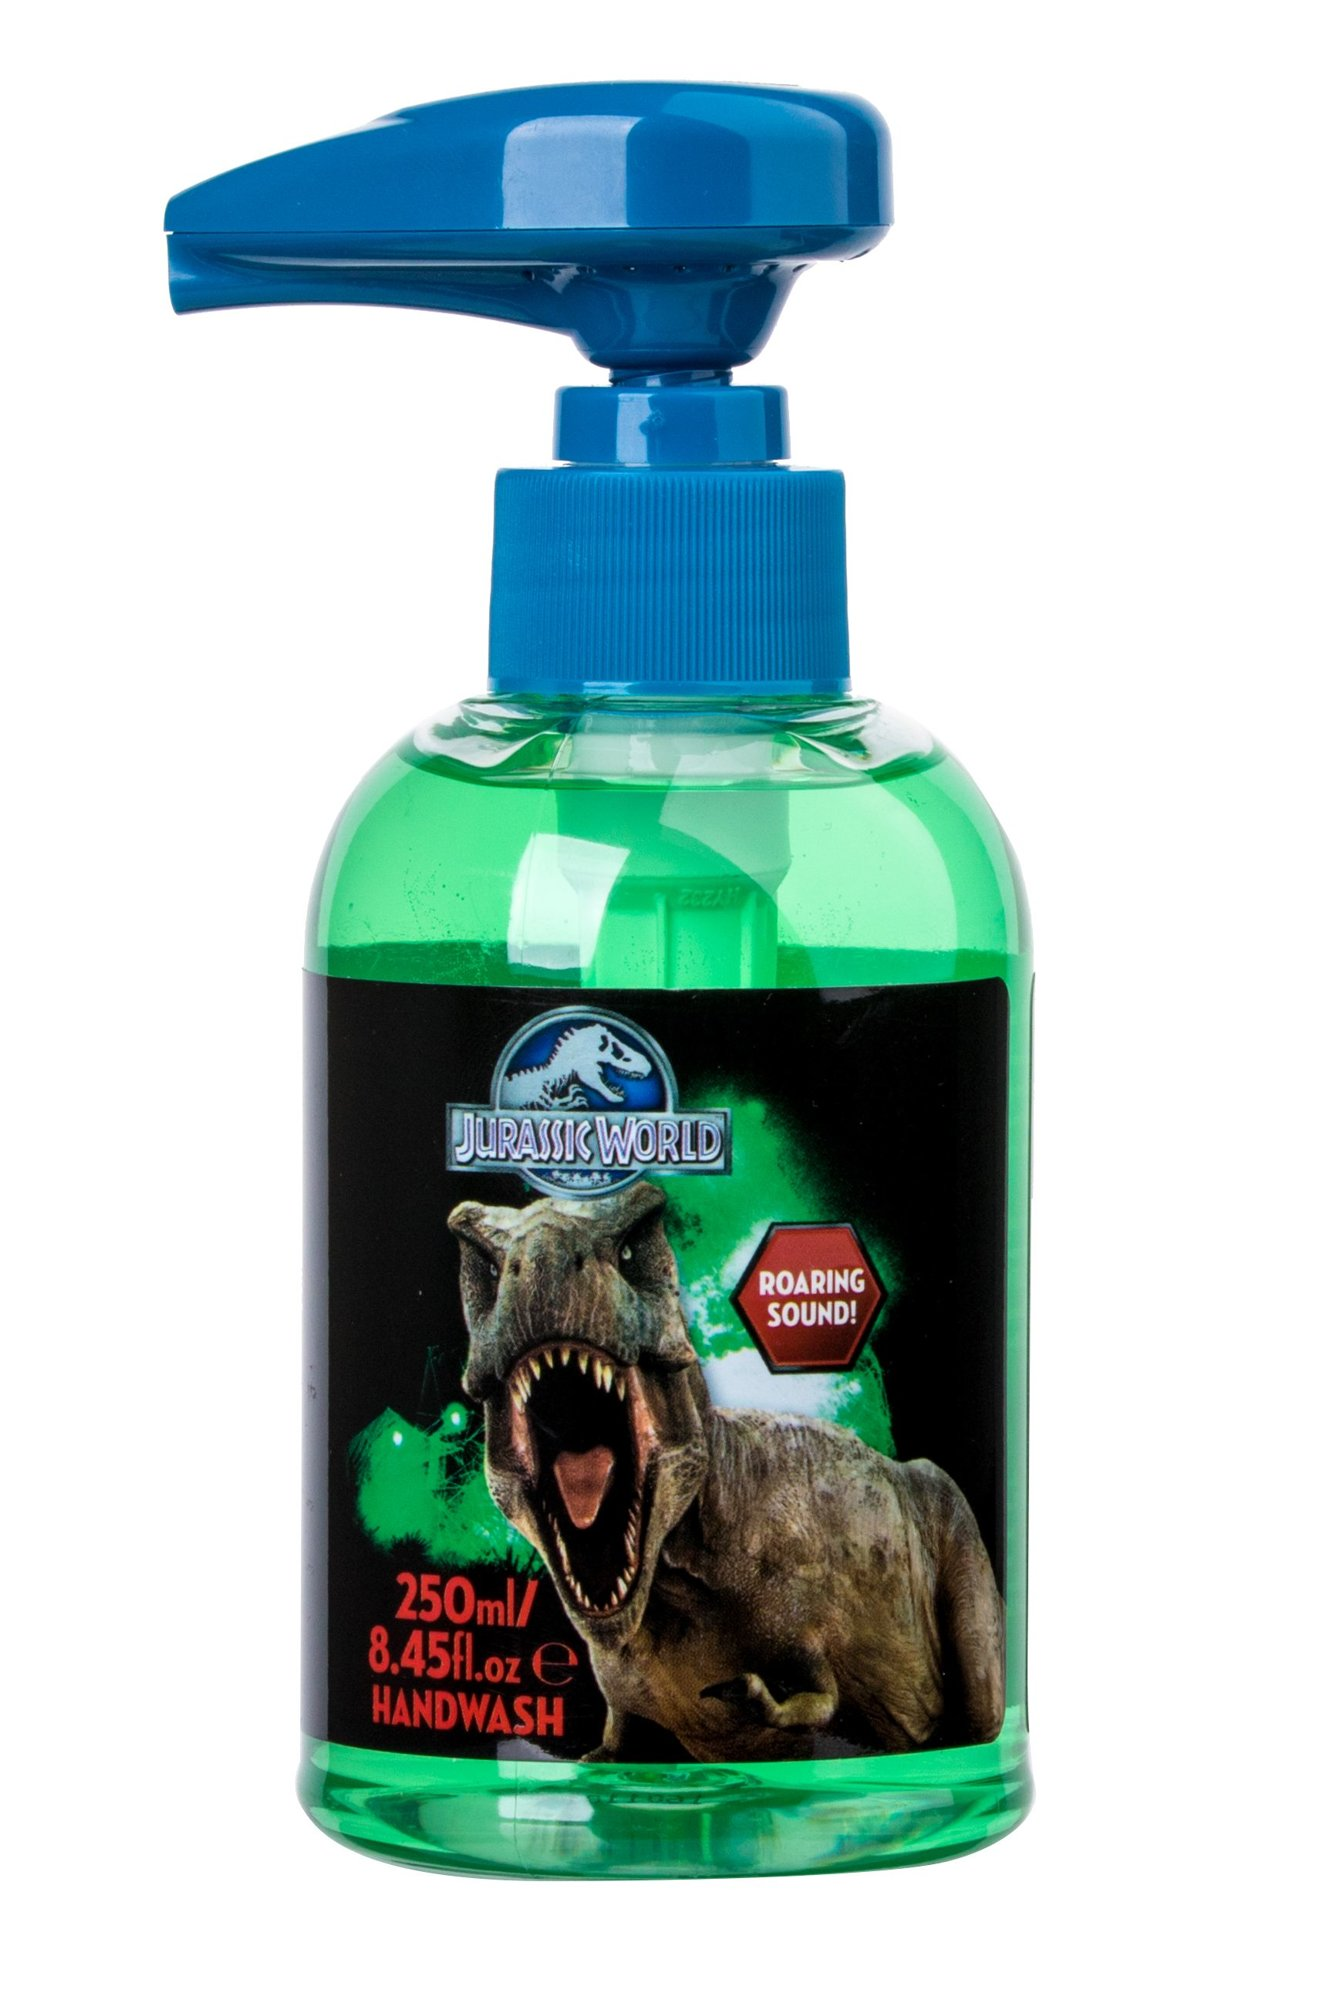 Universal Jurassic World Hand Wash With Roaring Sound Cosmetic 250ml